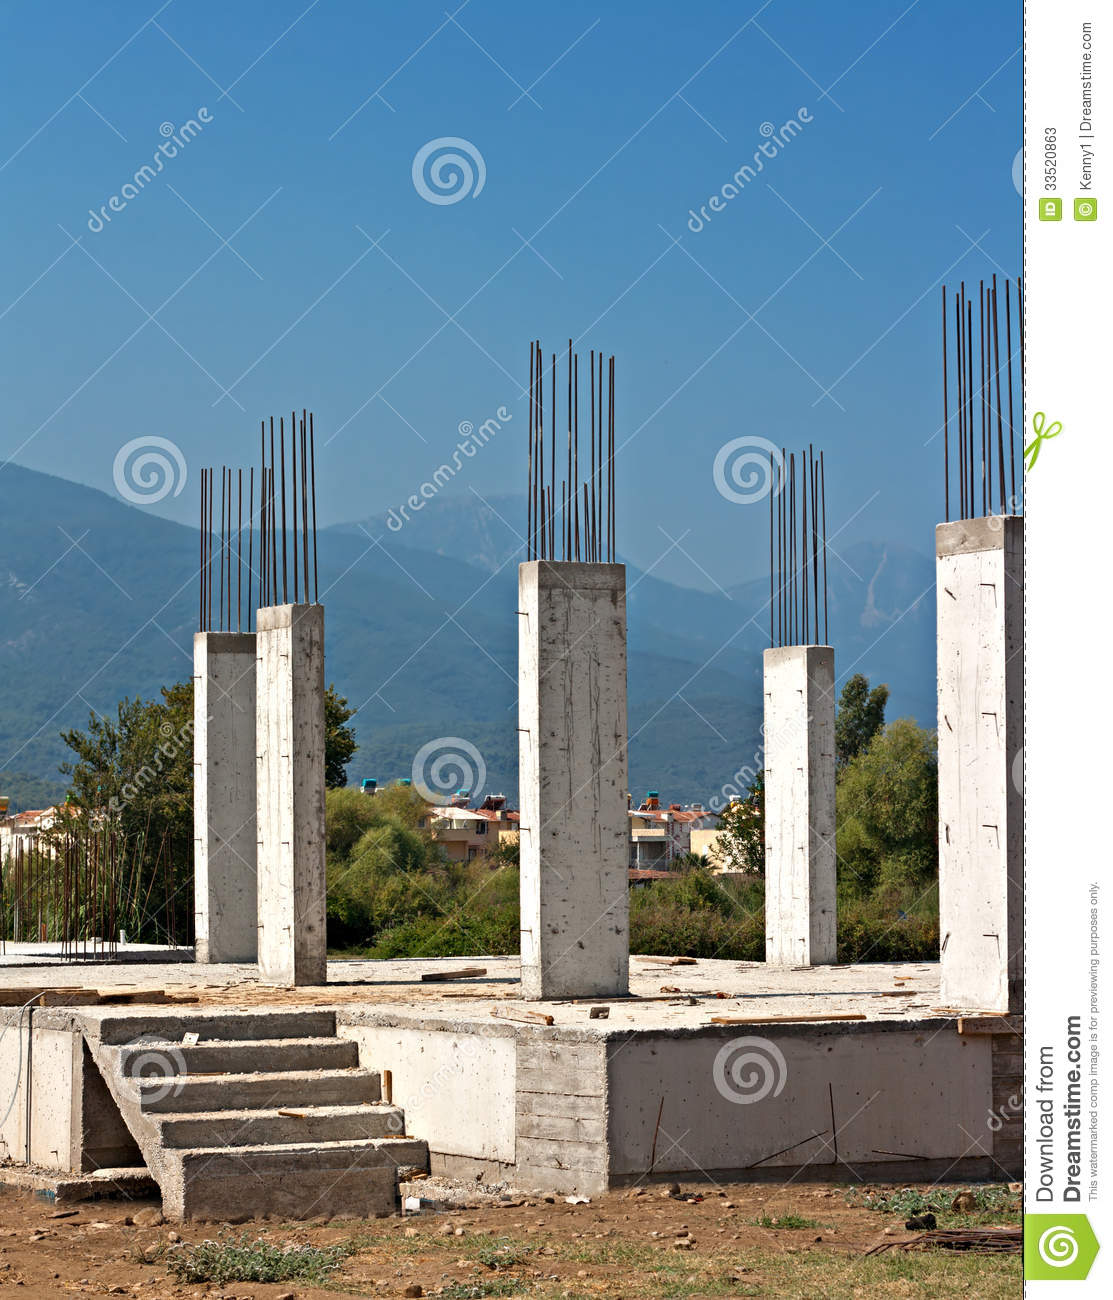 Reinforced concrete pillars on building site stock photos for How to build a house on pillars